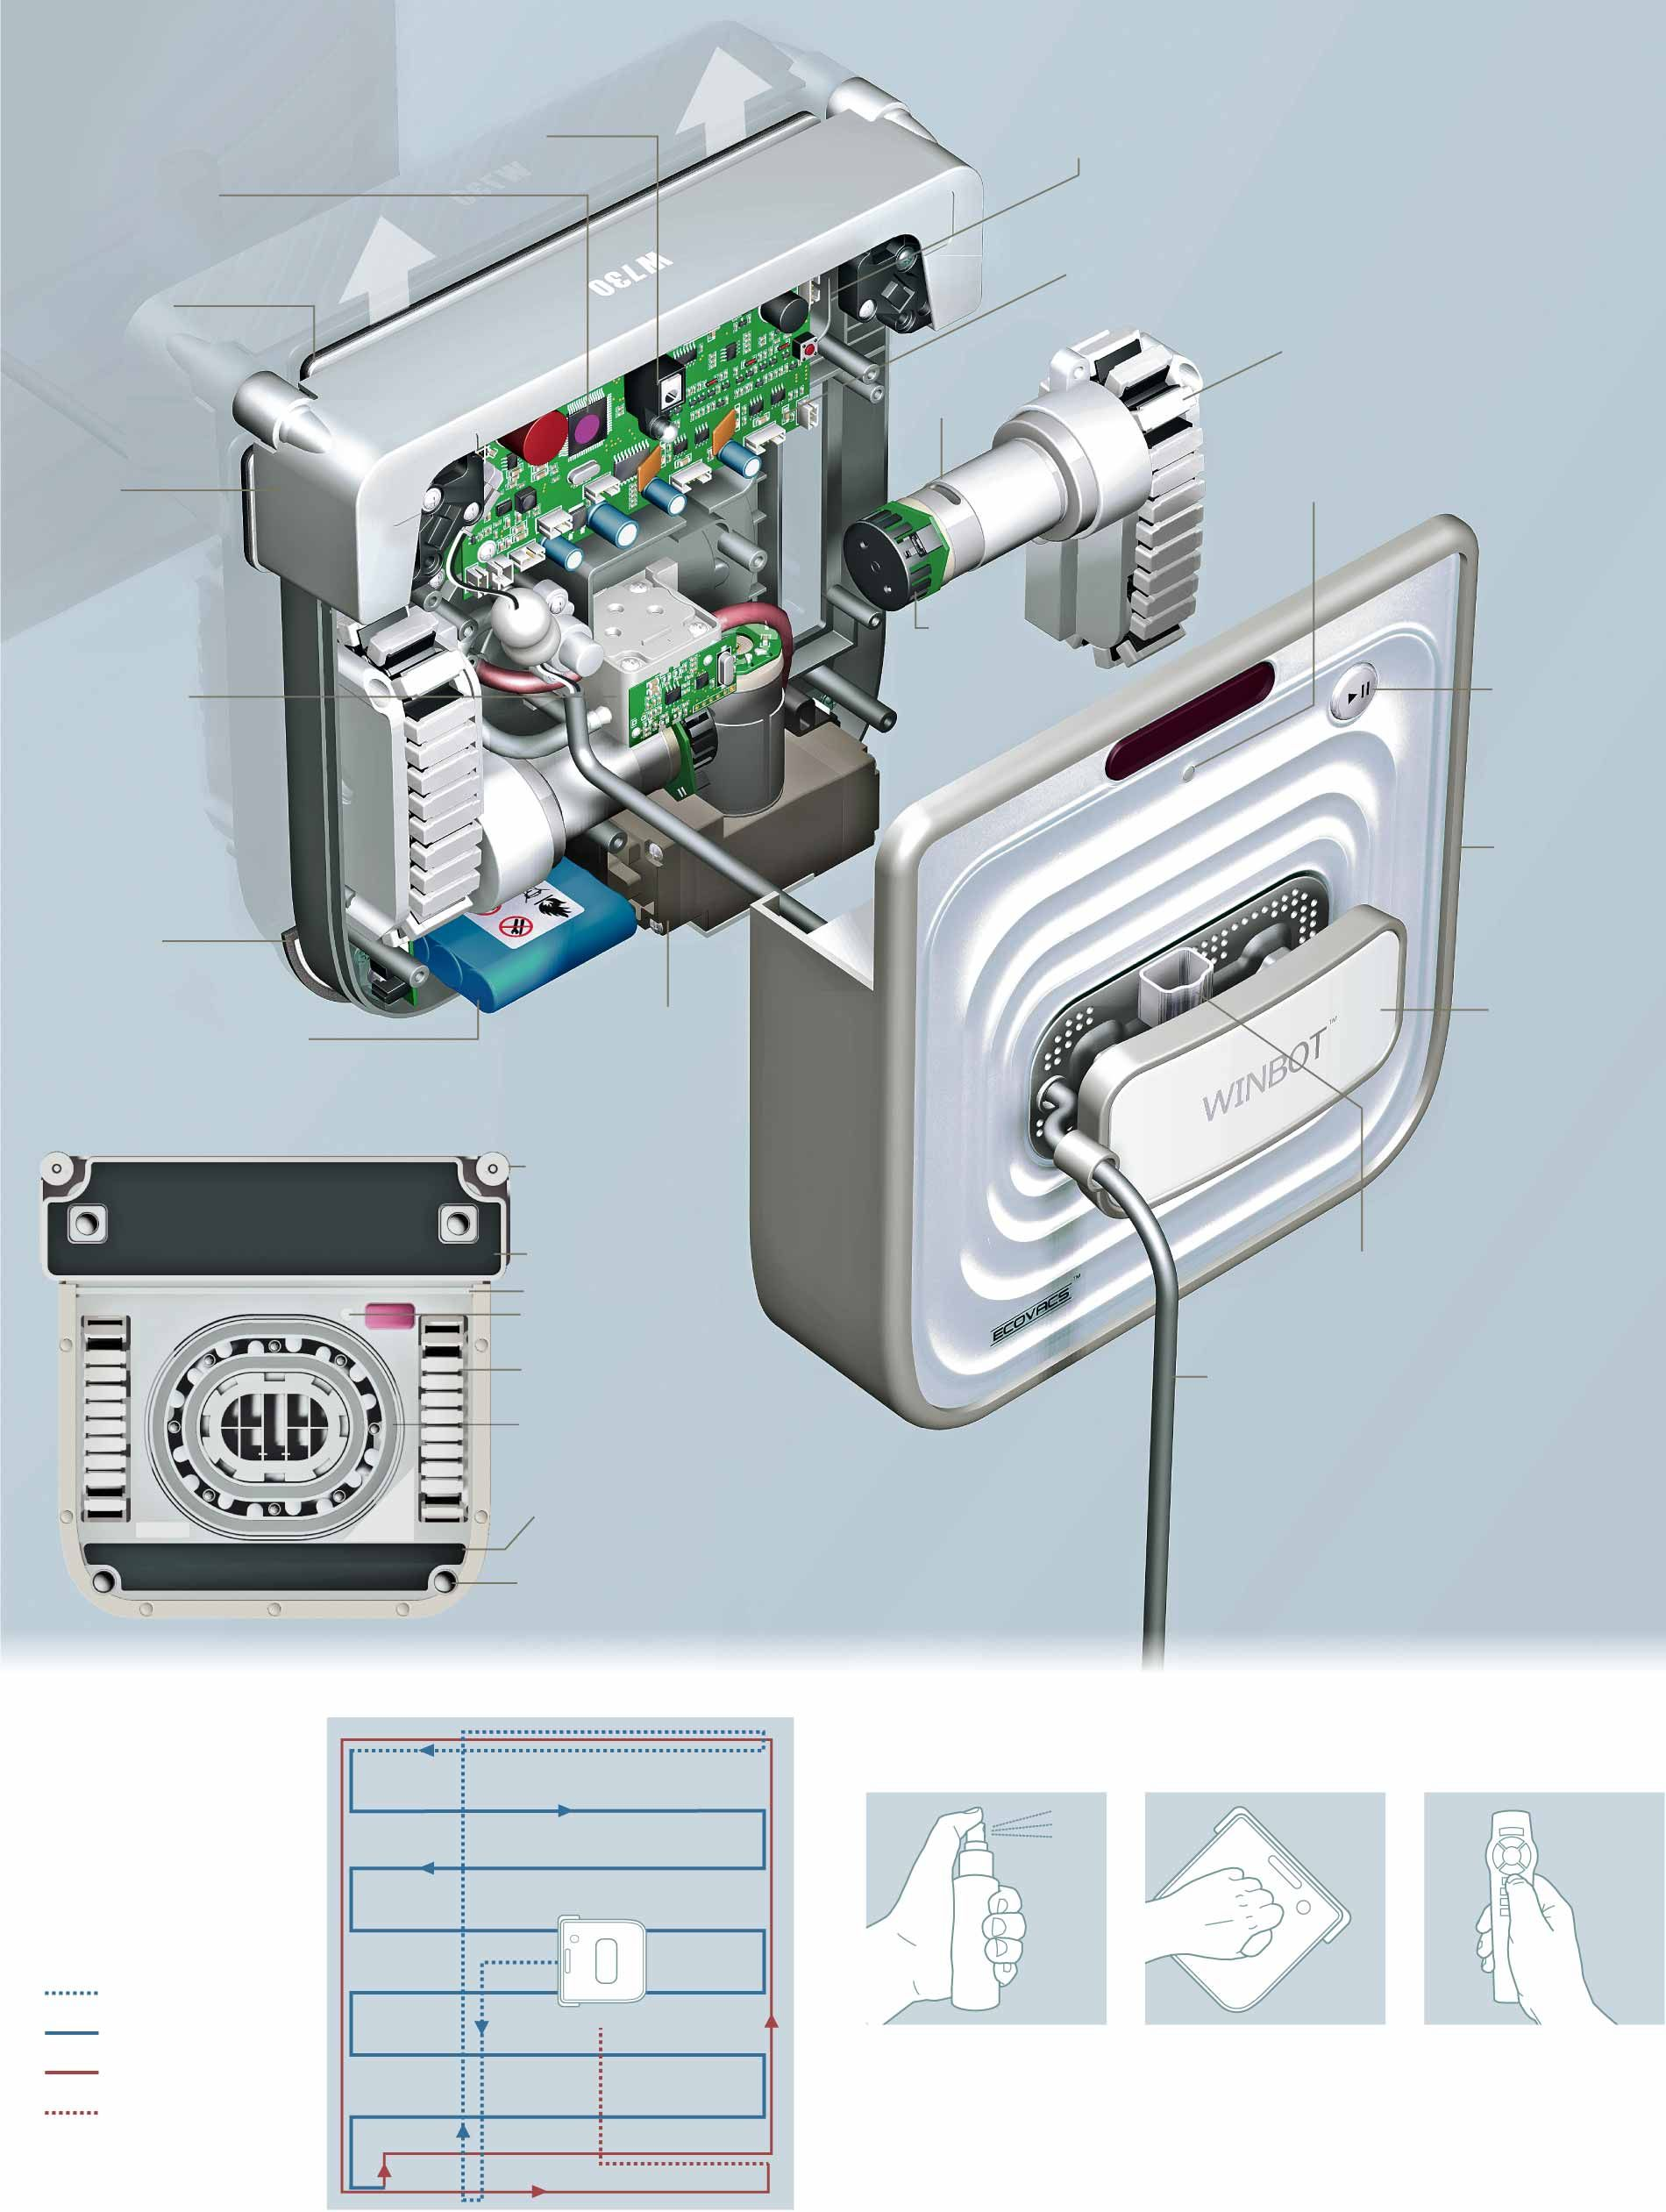 Robot Lavavetri Winbot.Inside The Winbot 730 A Robotic Window Cleaner Graphic